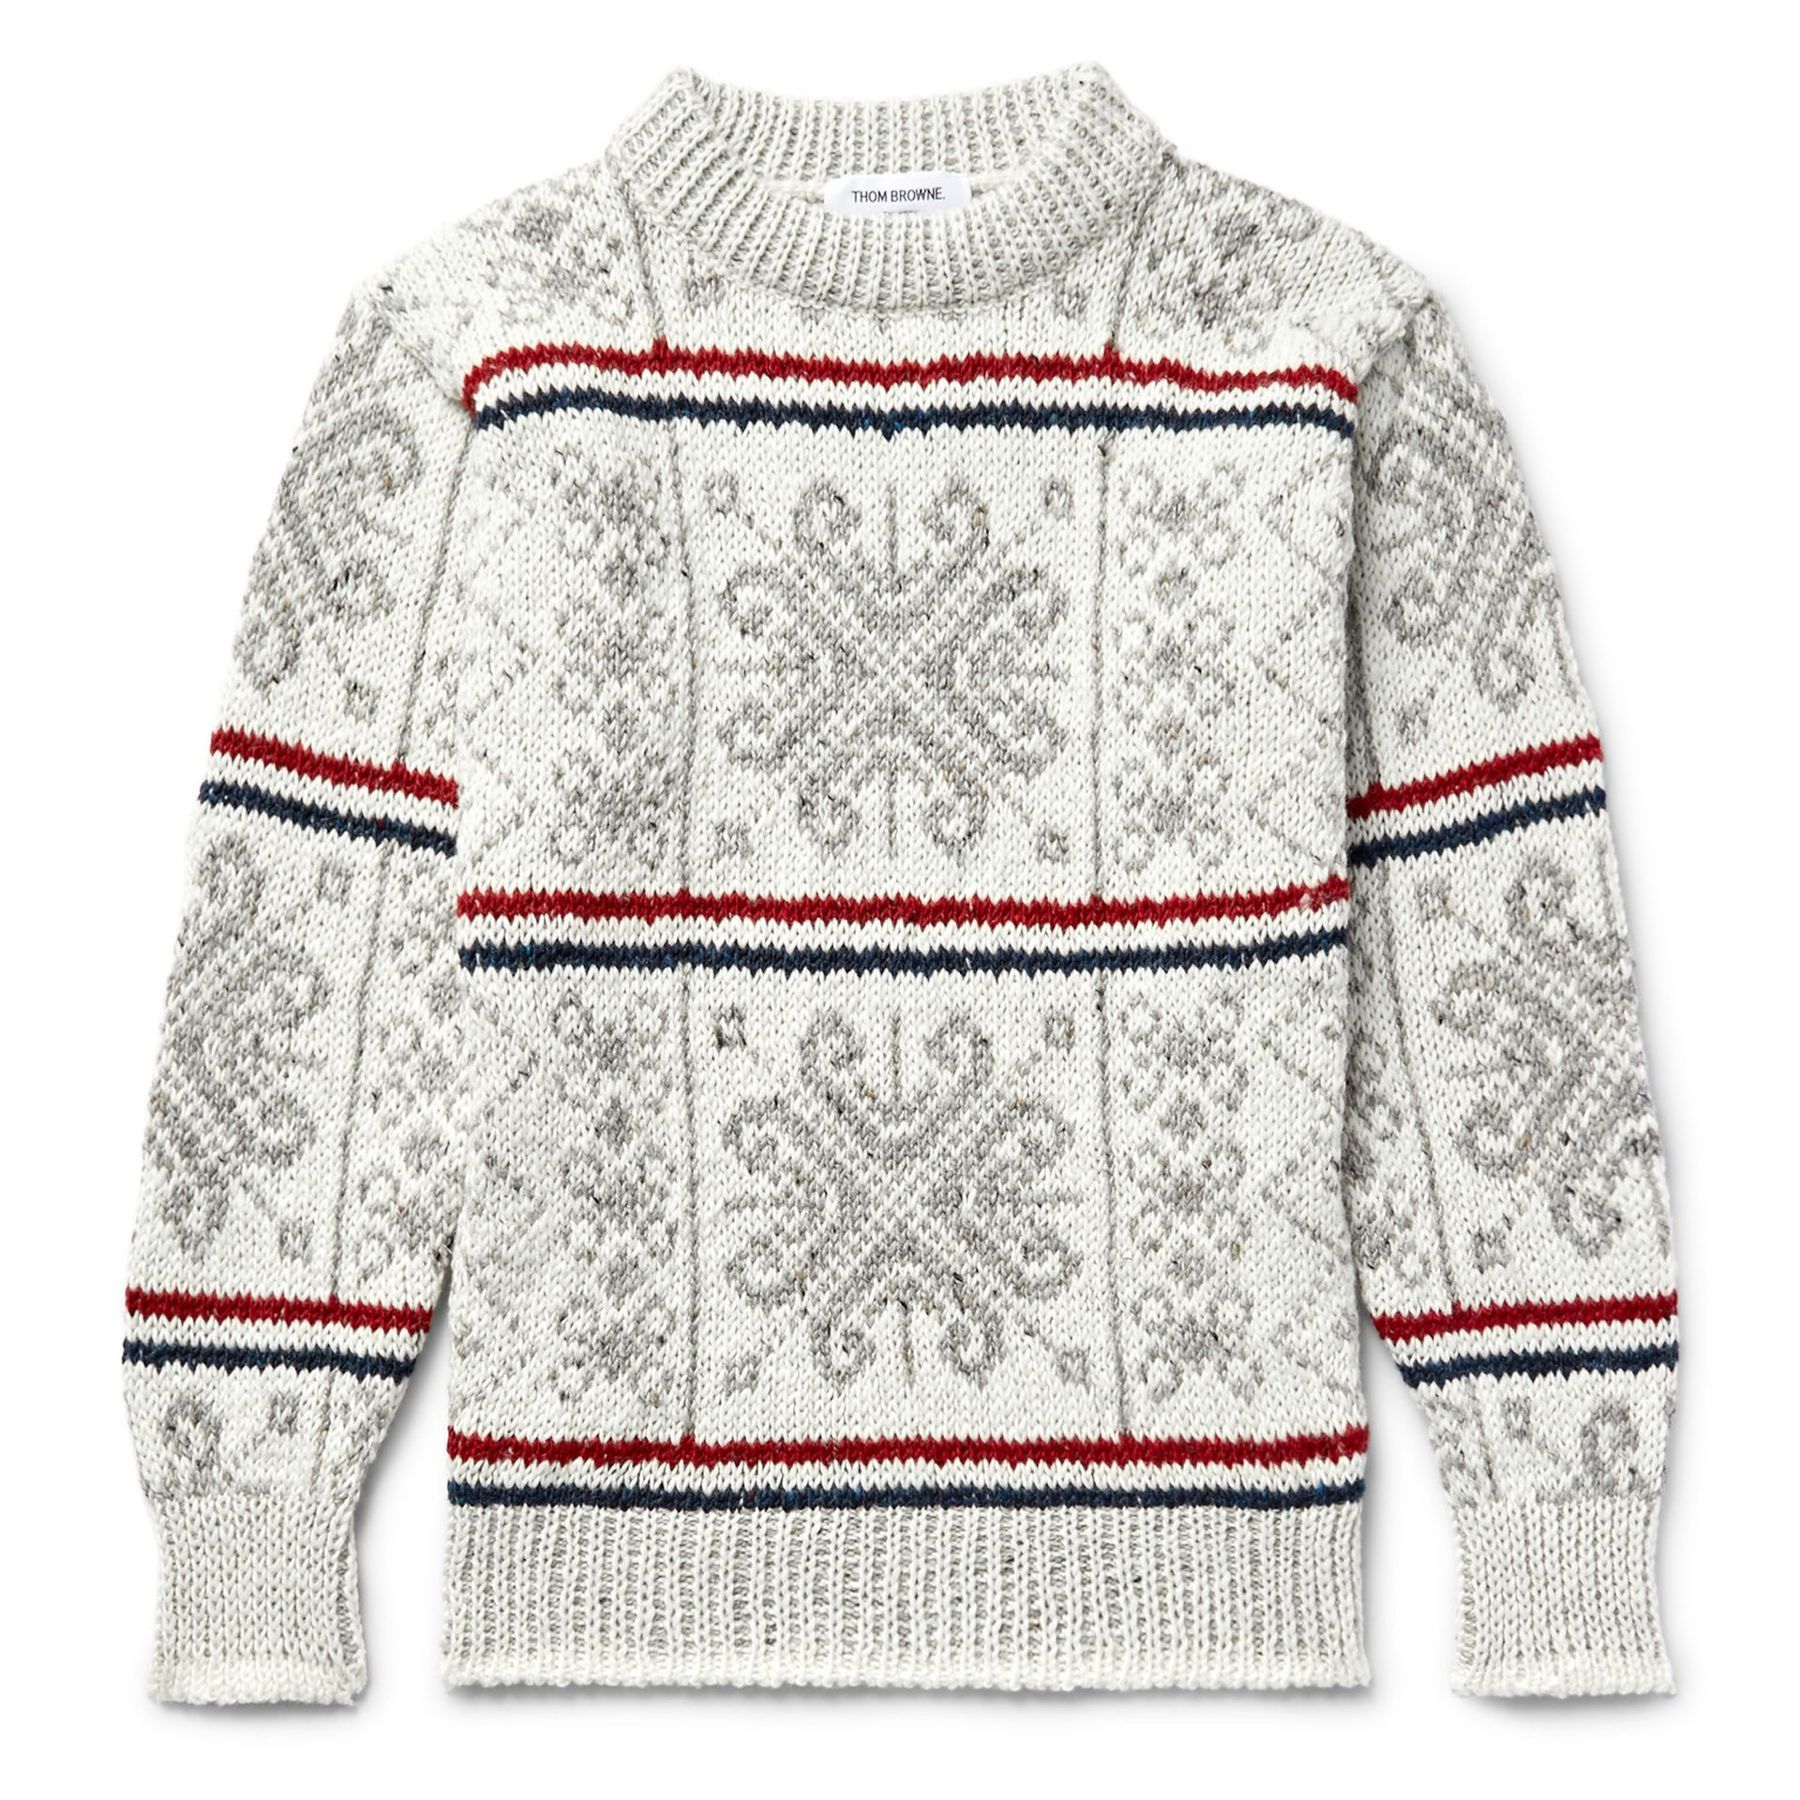 The GQ guide to Christmas jumpers | Christmas jumpers, Fair isles ...